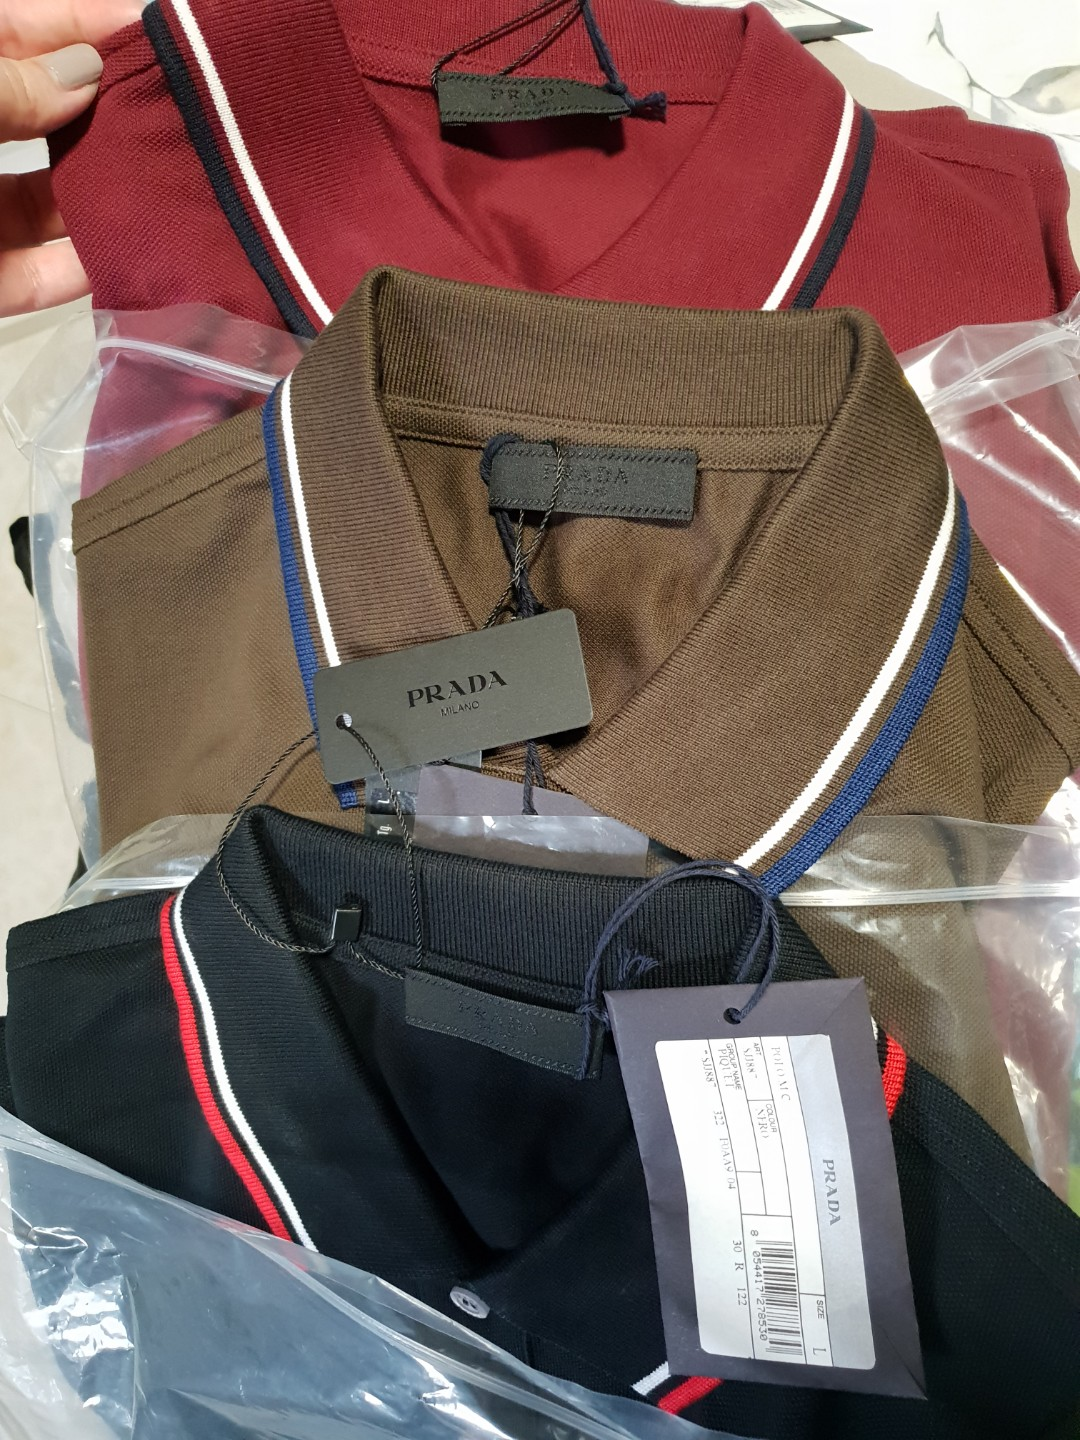 68989af7e Auth BN Prada polo tee t shirt size L XL, Luxury, Apparel, Men's on ...